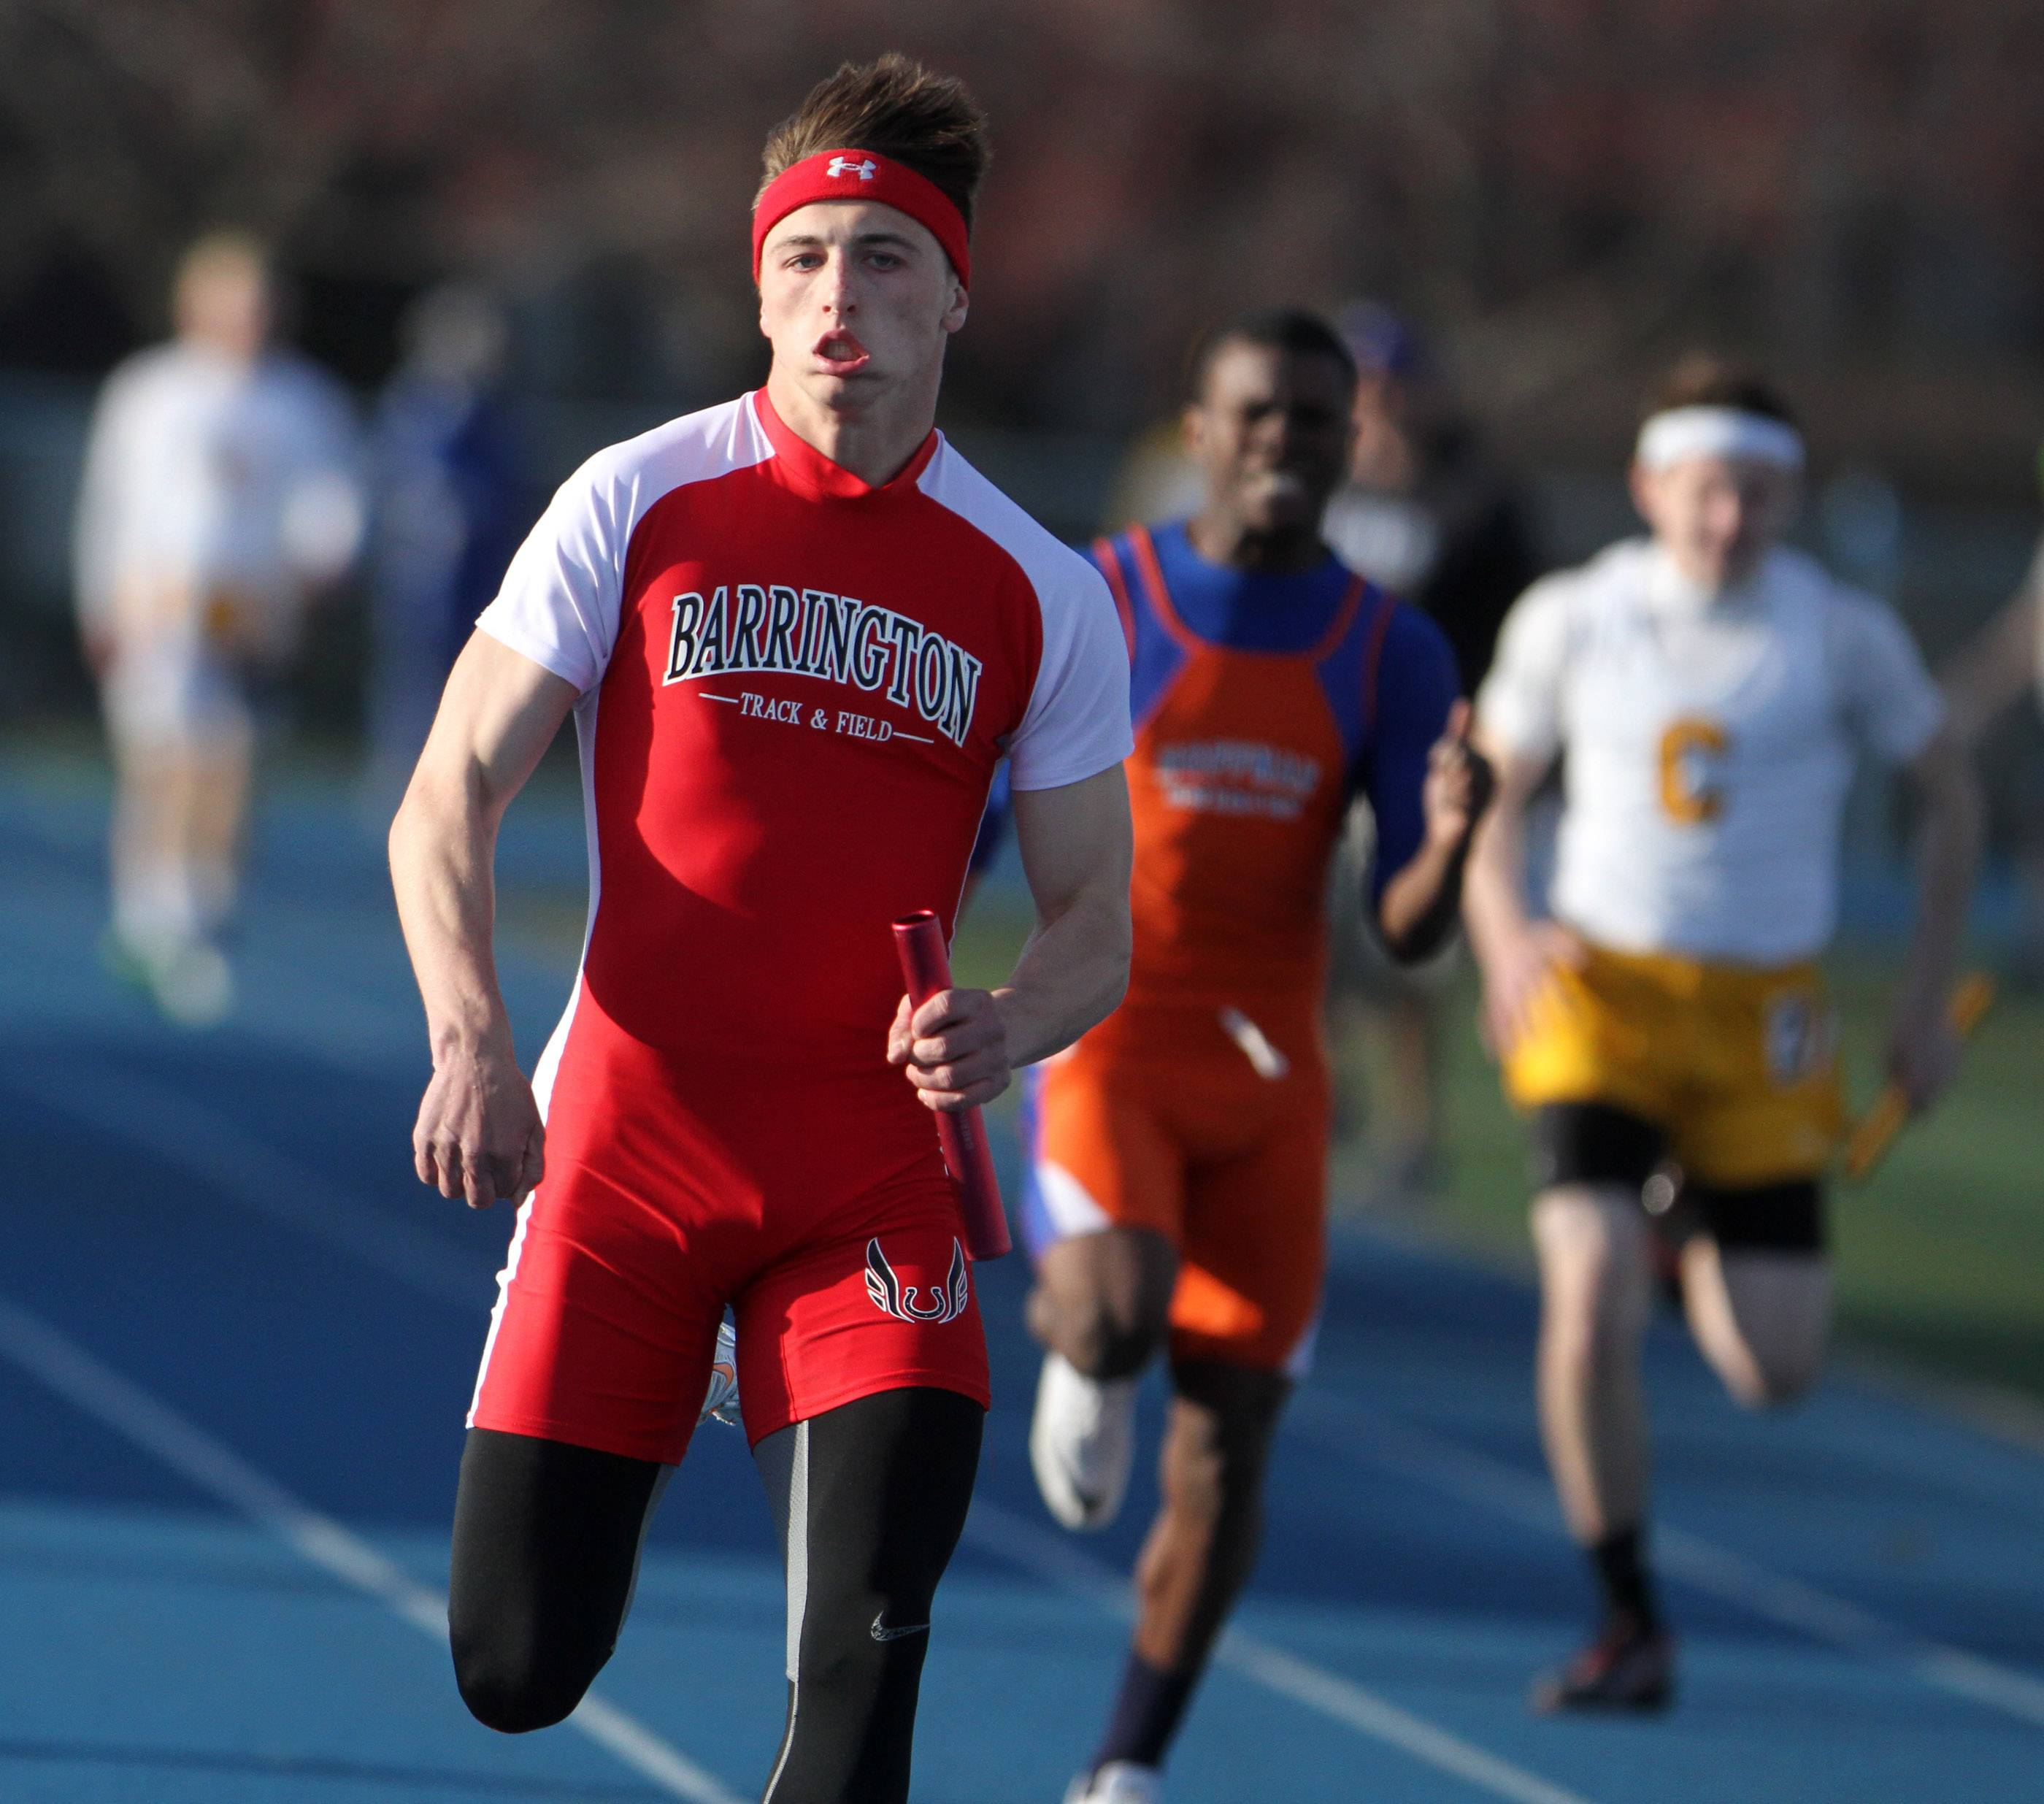 Barrington placed first in the 400-meter relay as J.P. Brooks crosses the finish line at the Lake Zurich boys track invite on Friday.